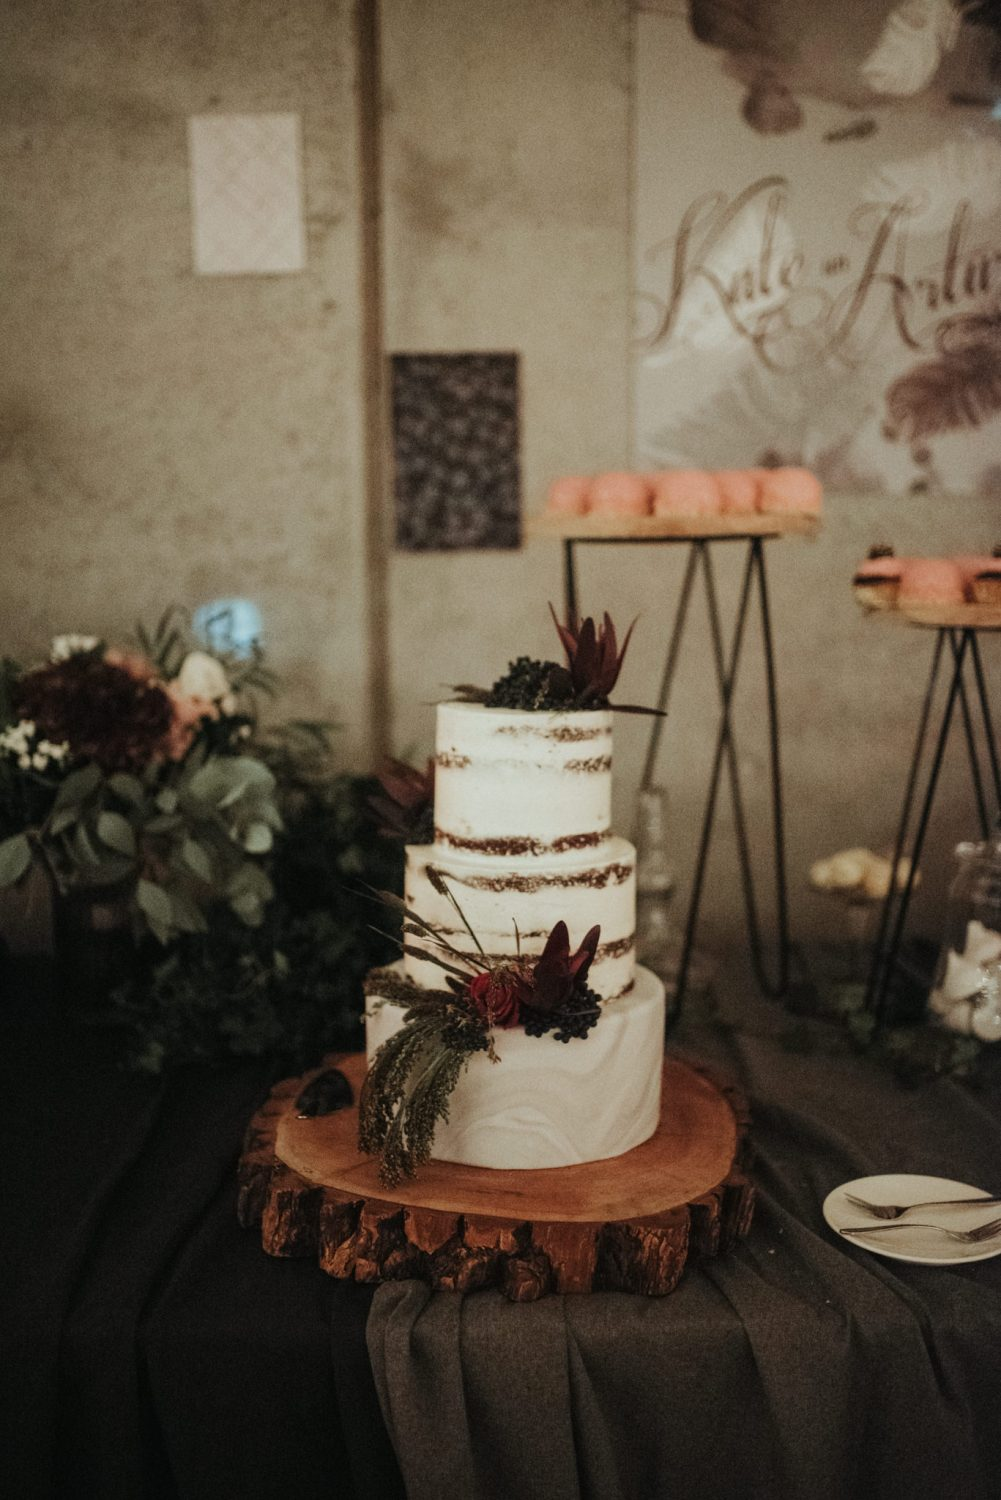 Wedding cake, burgundy colors.